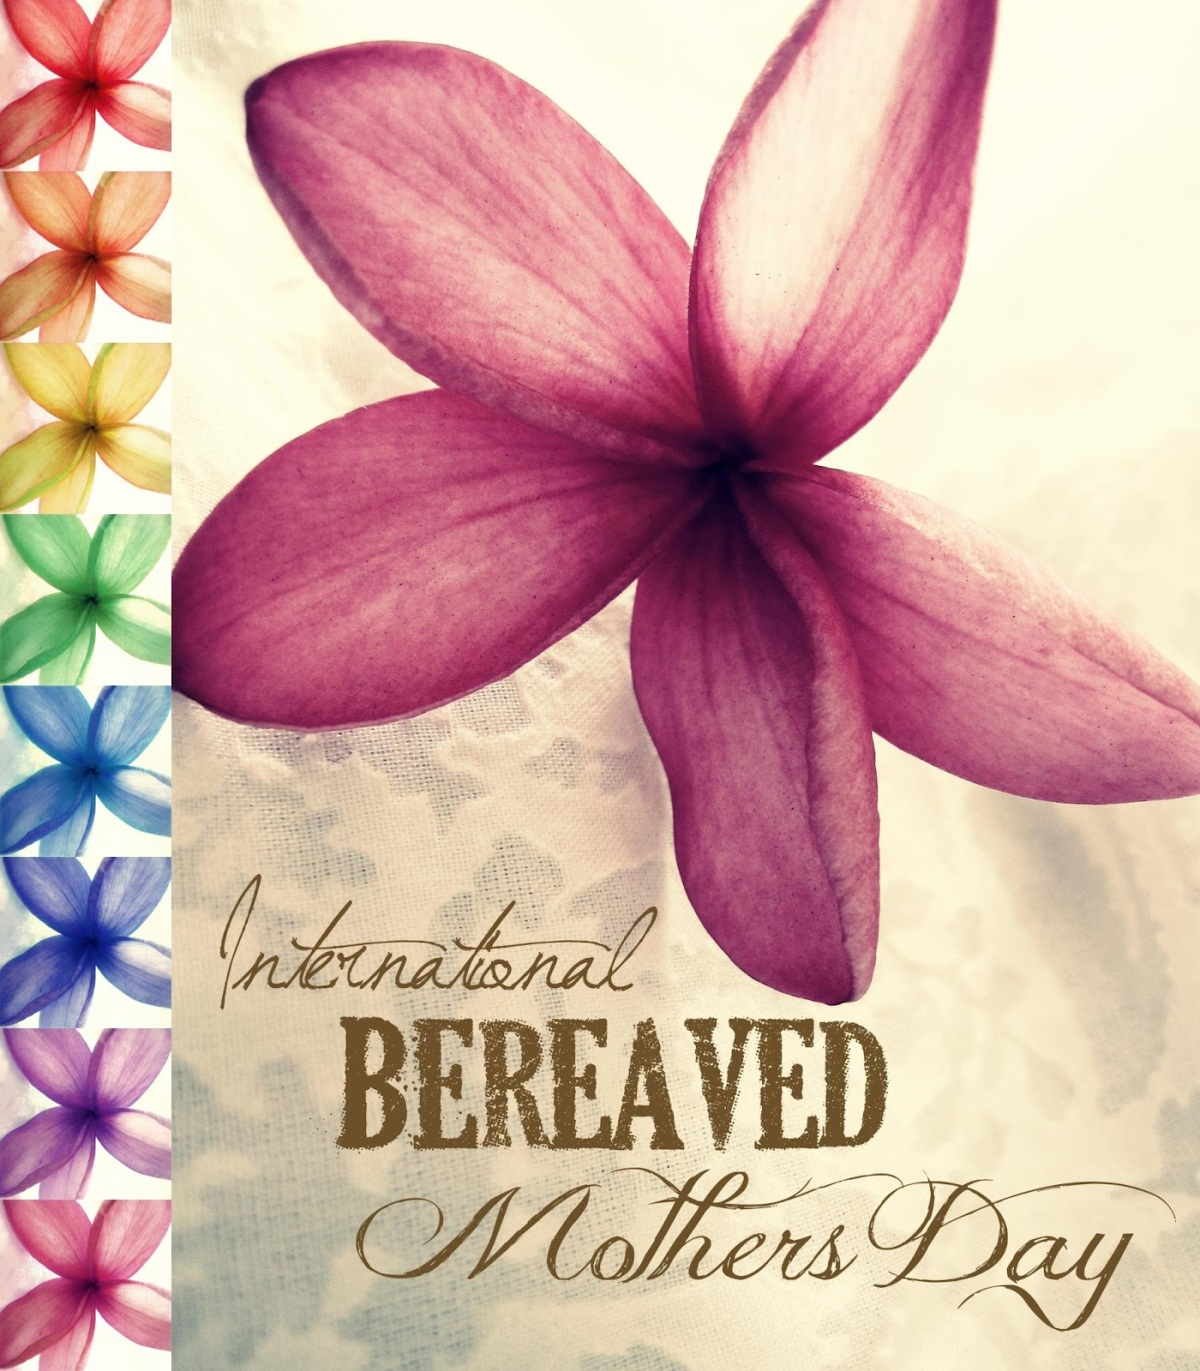 International Bereaved Mother's Day 2019